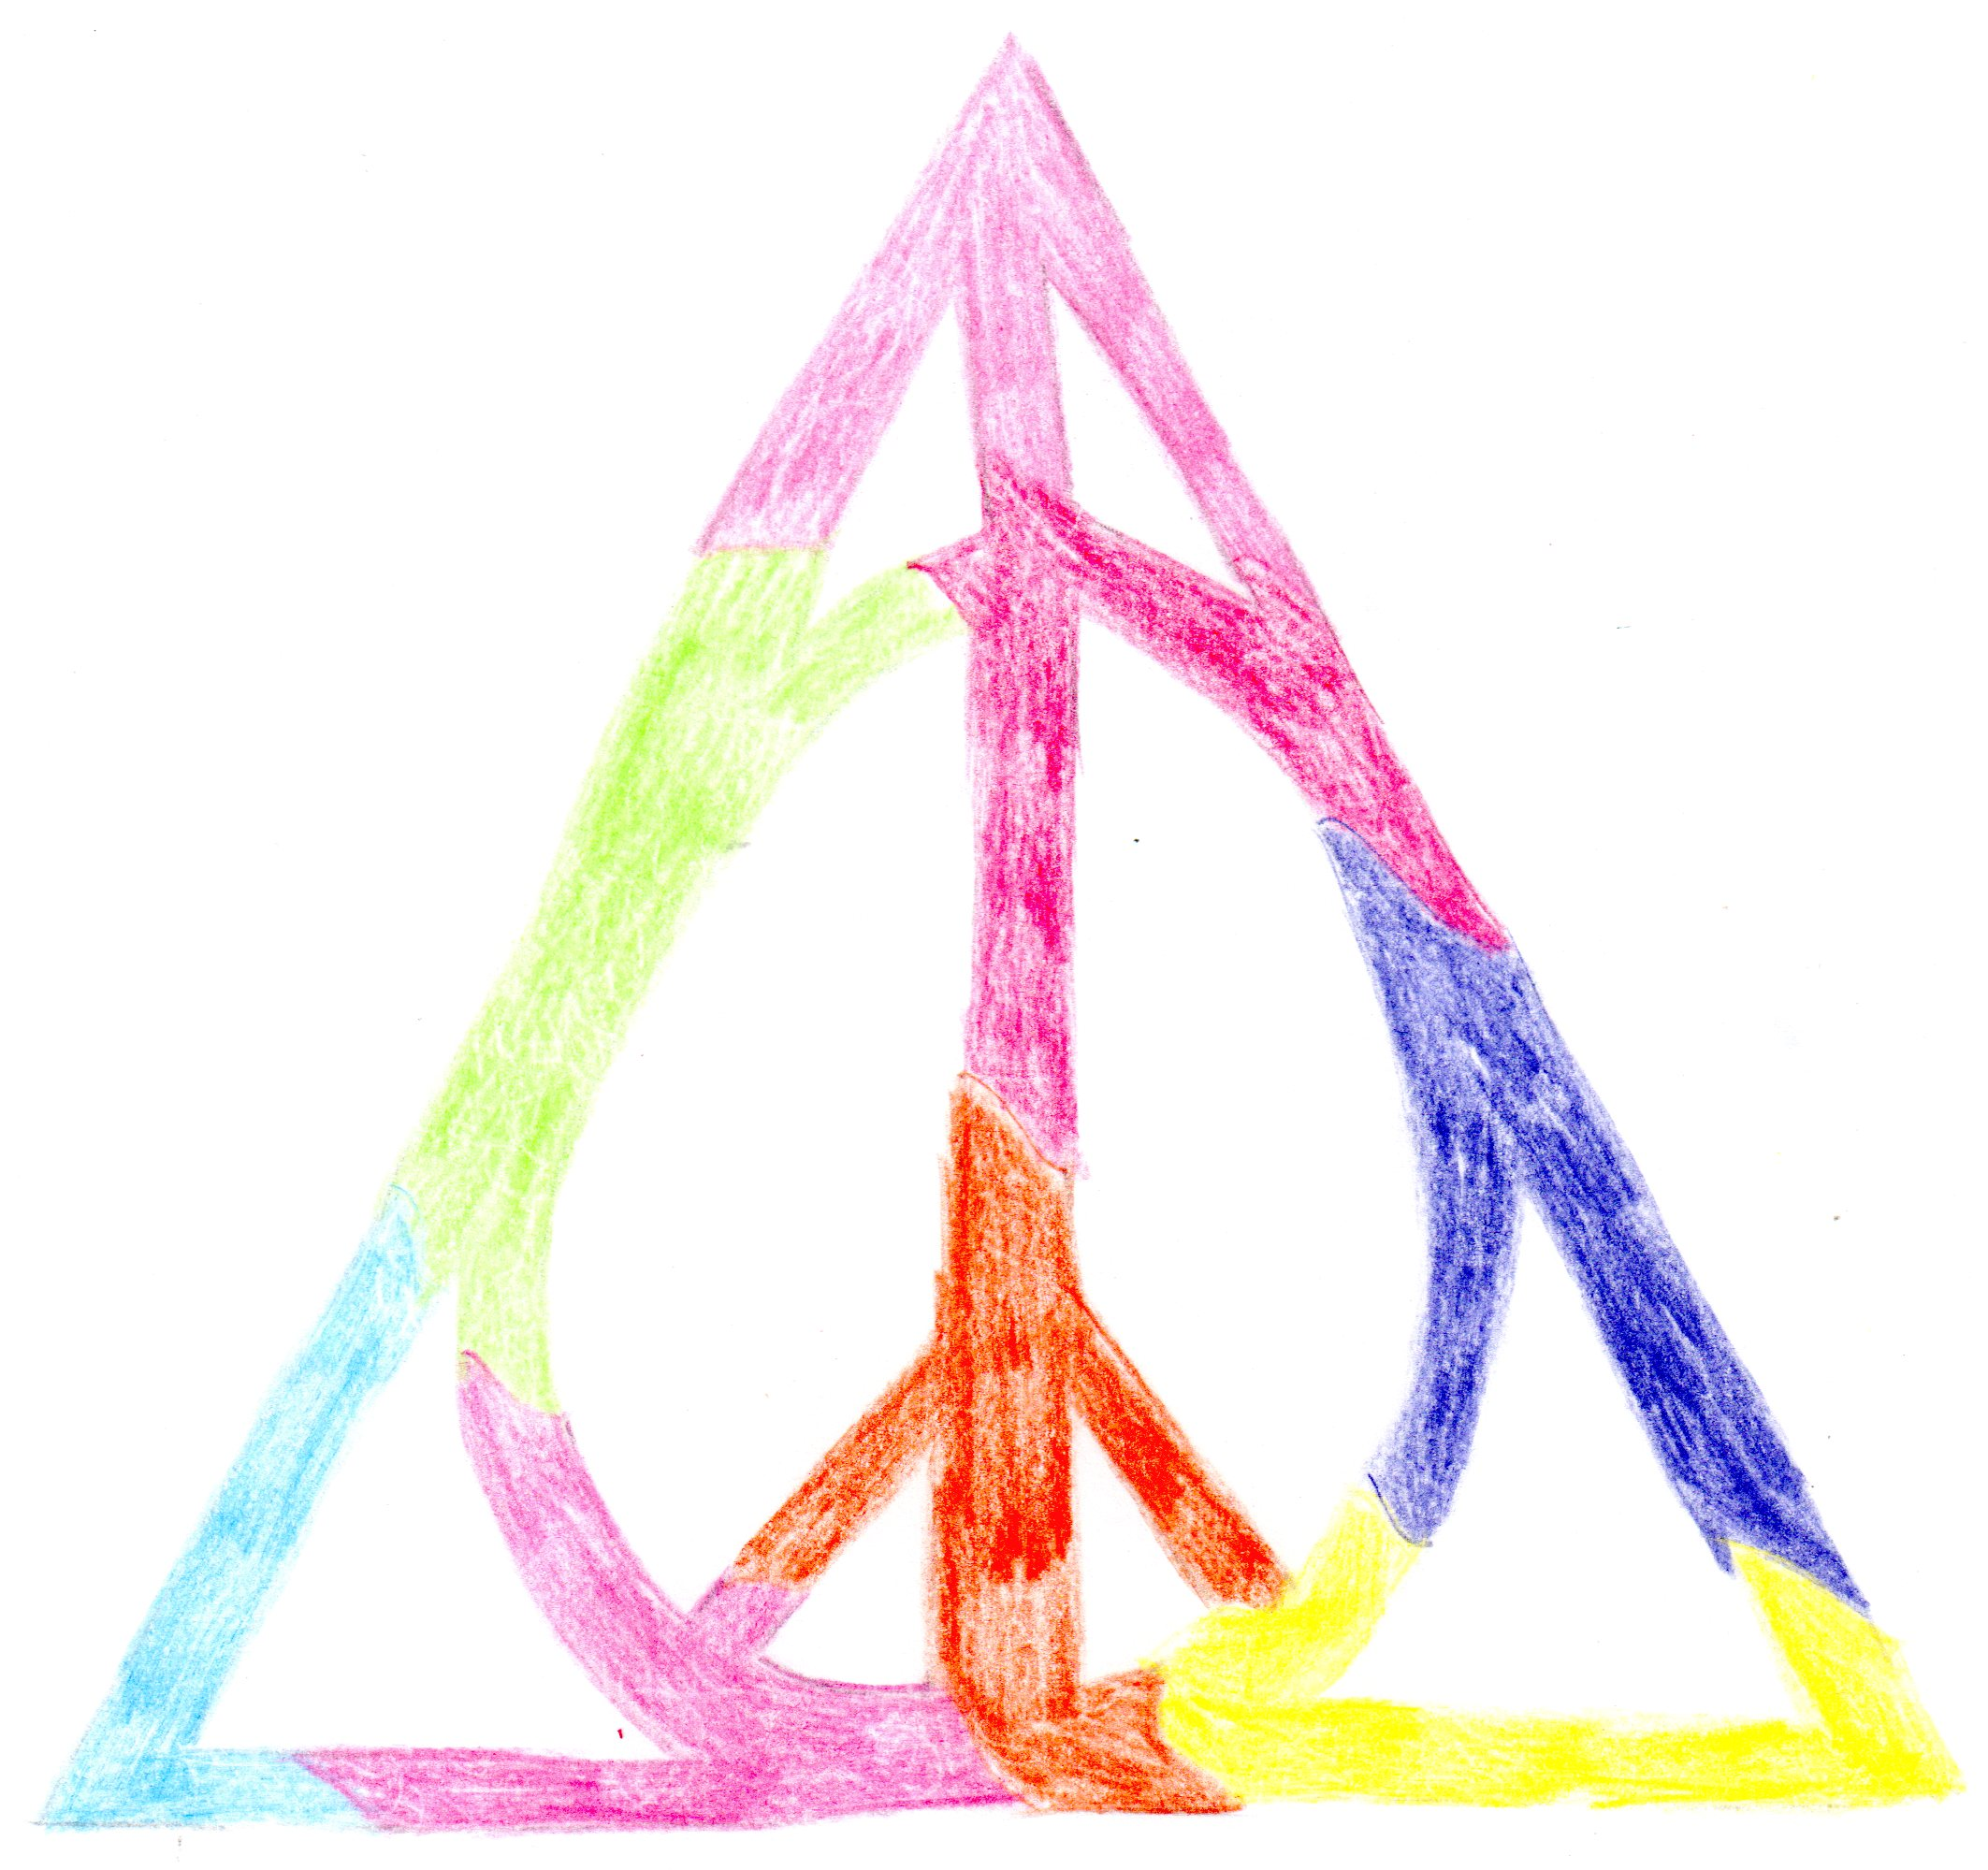 Ten past posts about harry potter one about jk rowling deathly hallows peace symbol artwork that i made in 2012 biocorpaavc